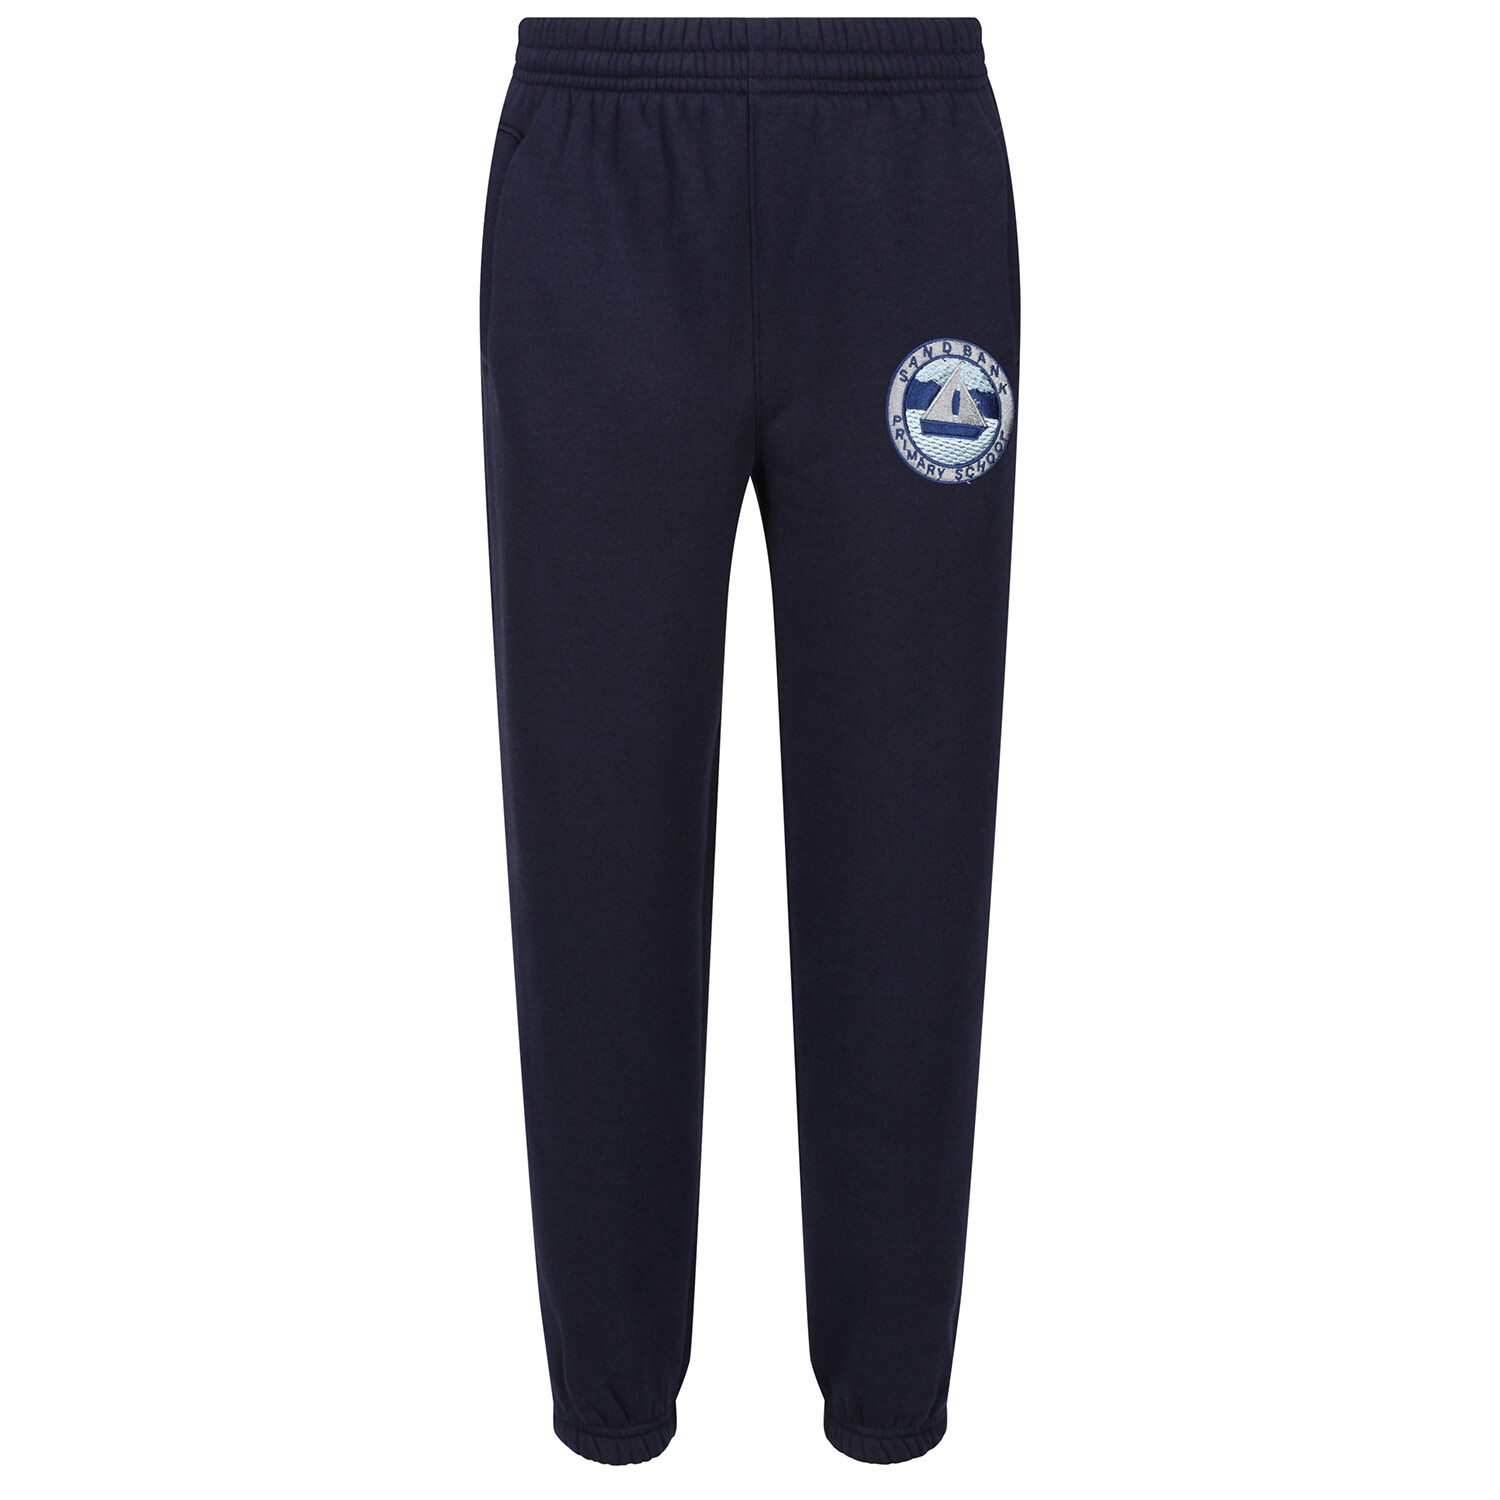 Sandbank Jog Pant for PE & Outdoor Activity